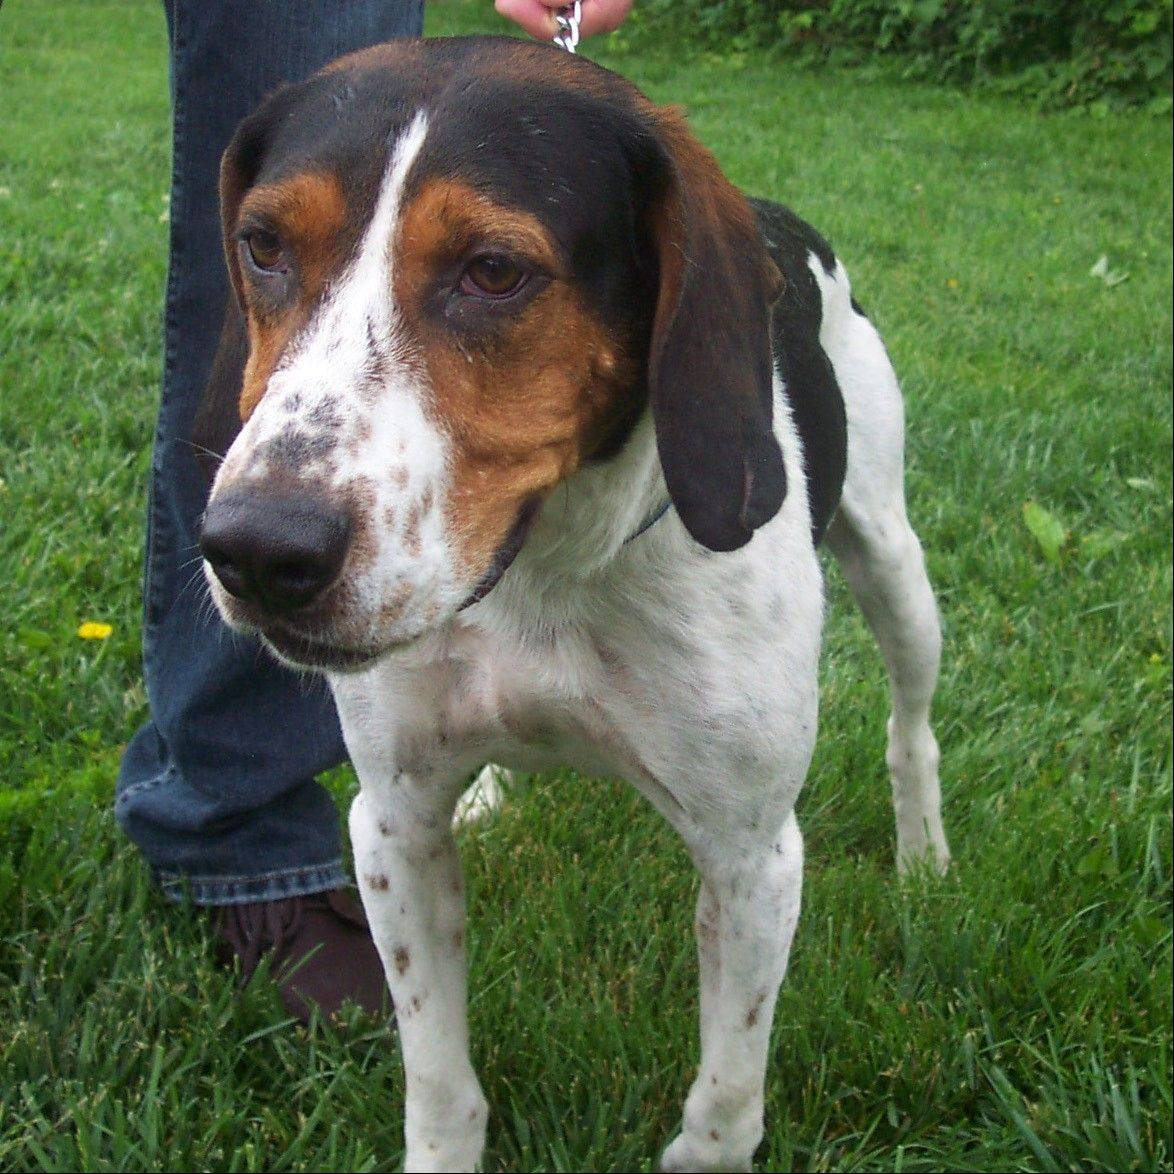 Boomer, a male hound mix, is about 1 year old and weighs 49 pounds. Boomer is hoping to become part of your family.